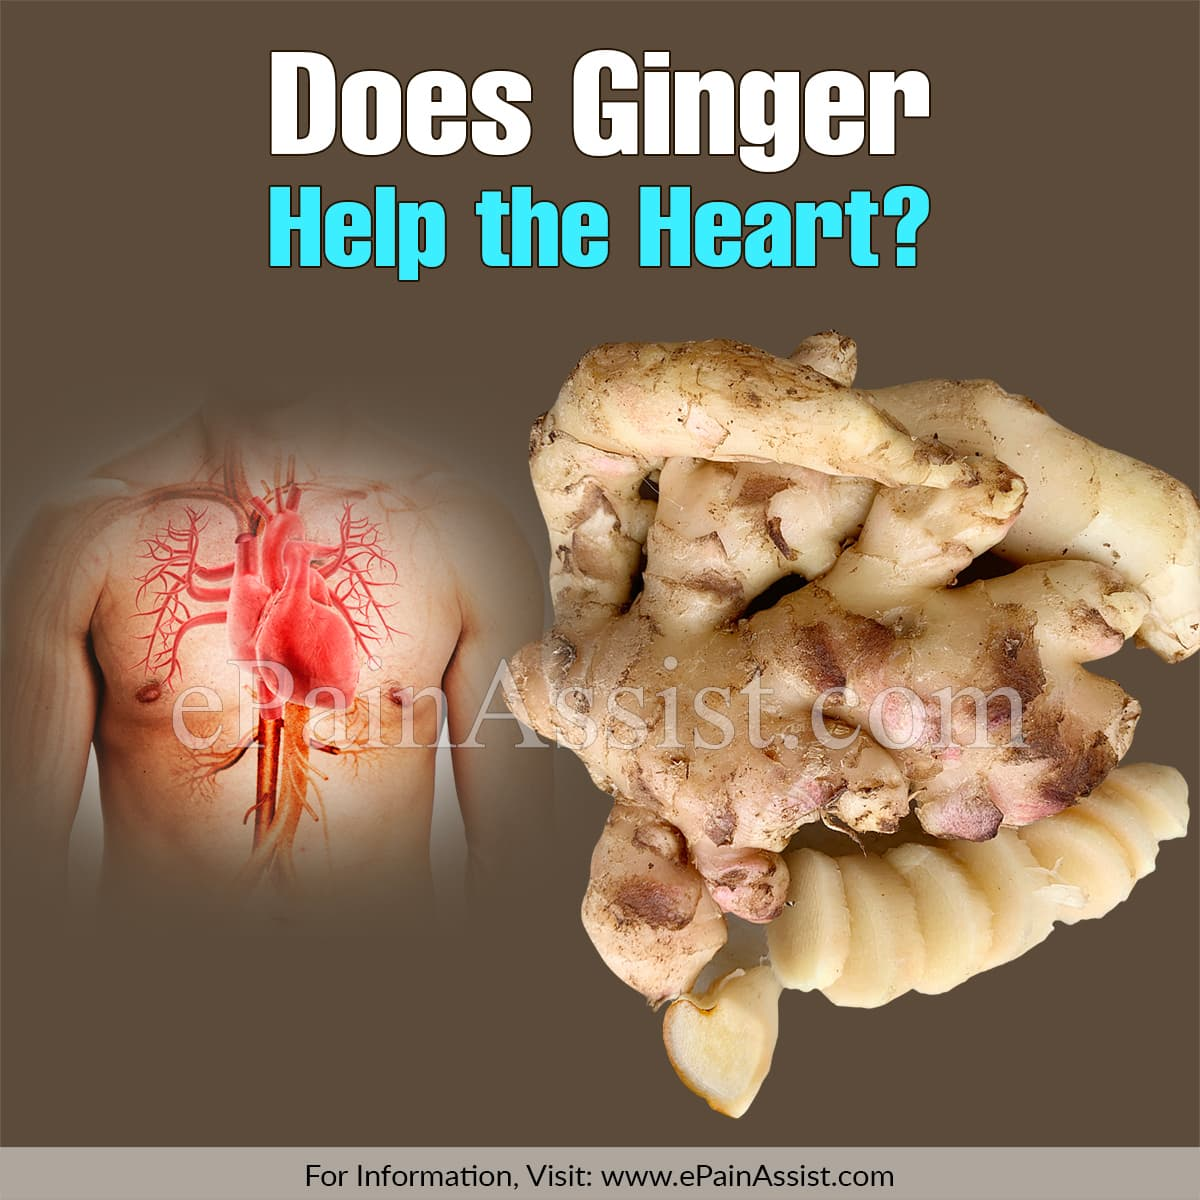 Does Ginger Help the Heart?